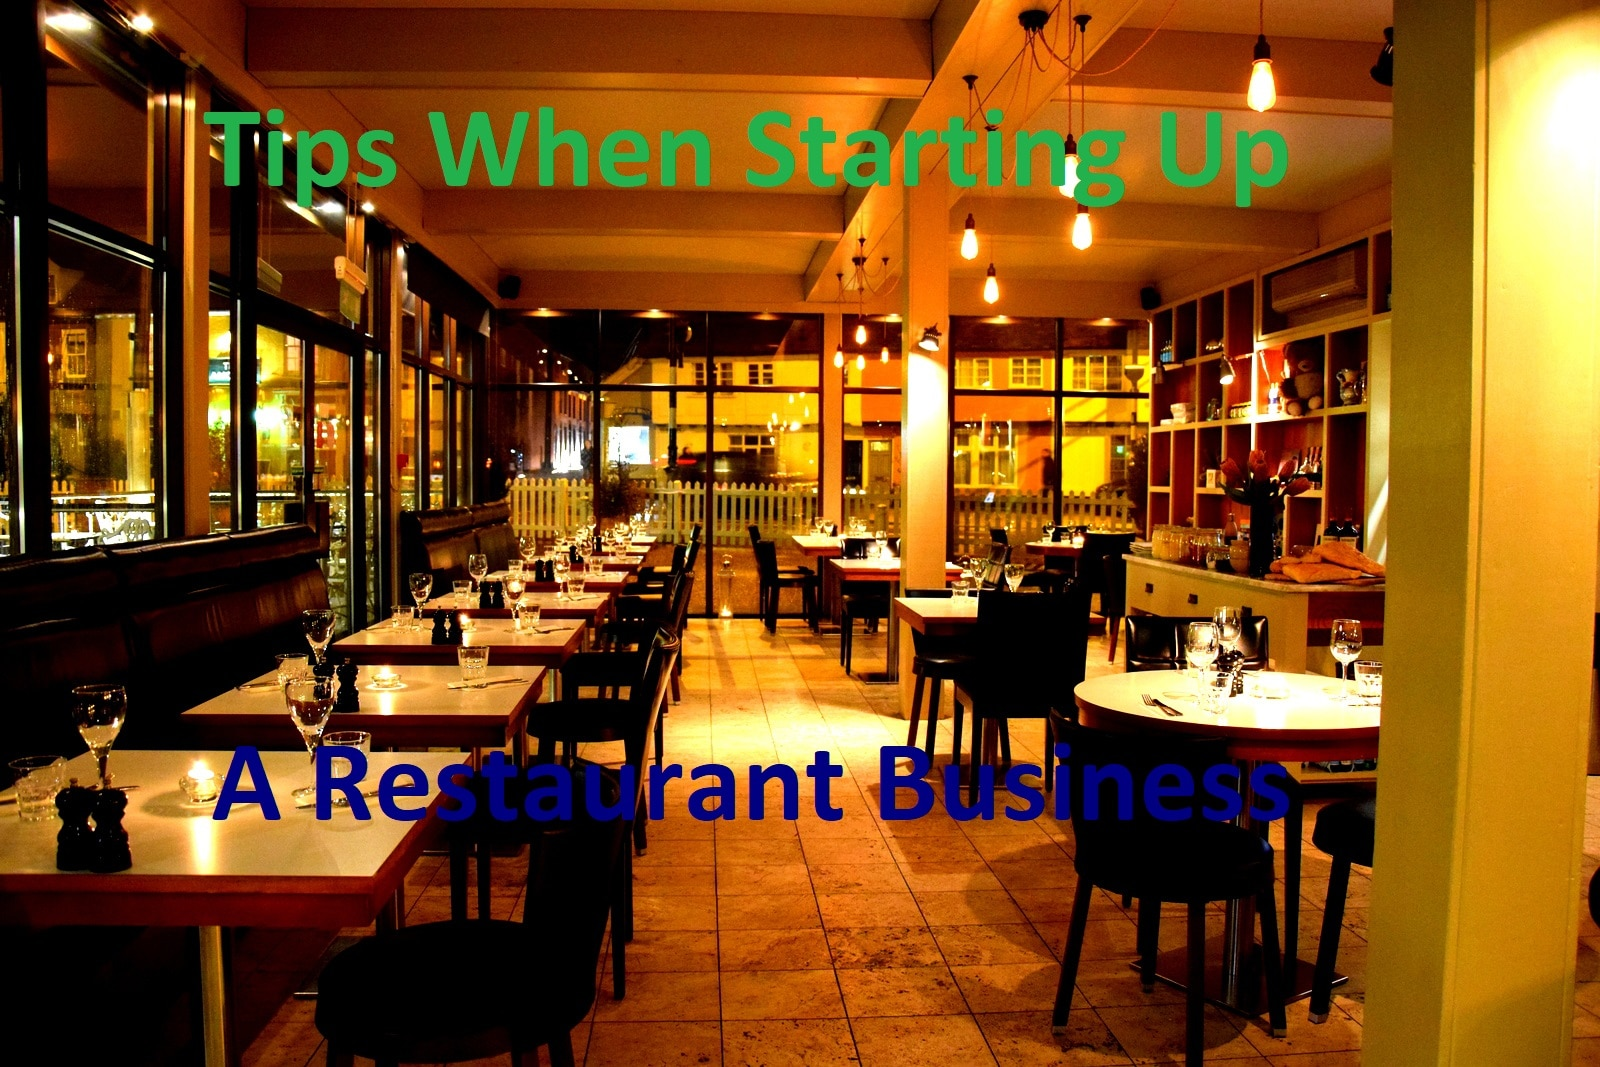 Tips When Starting Up A Restaurant Business